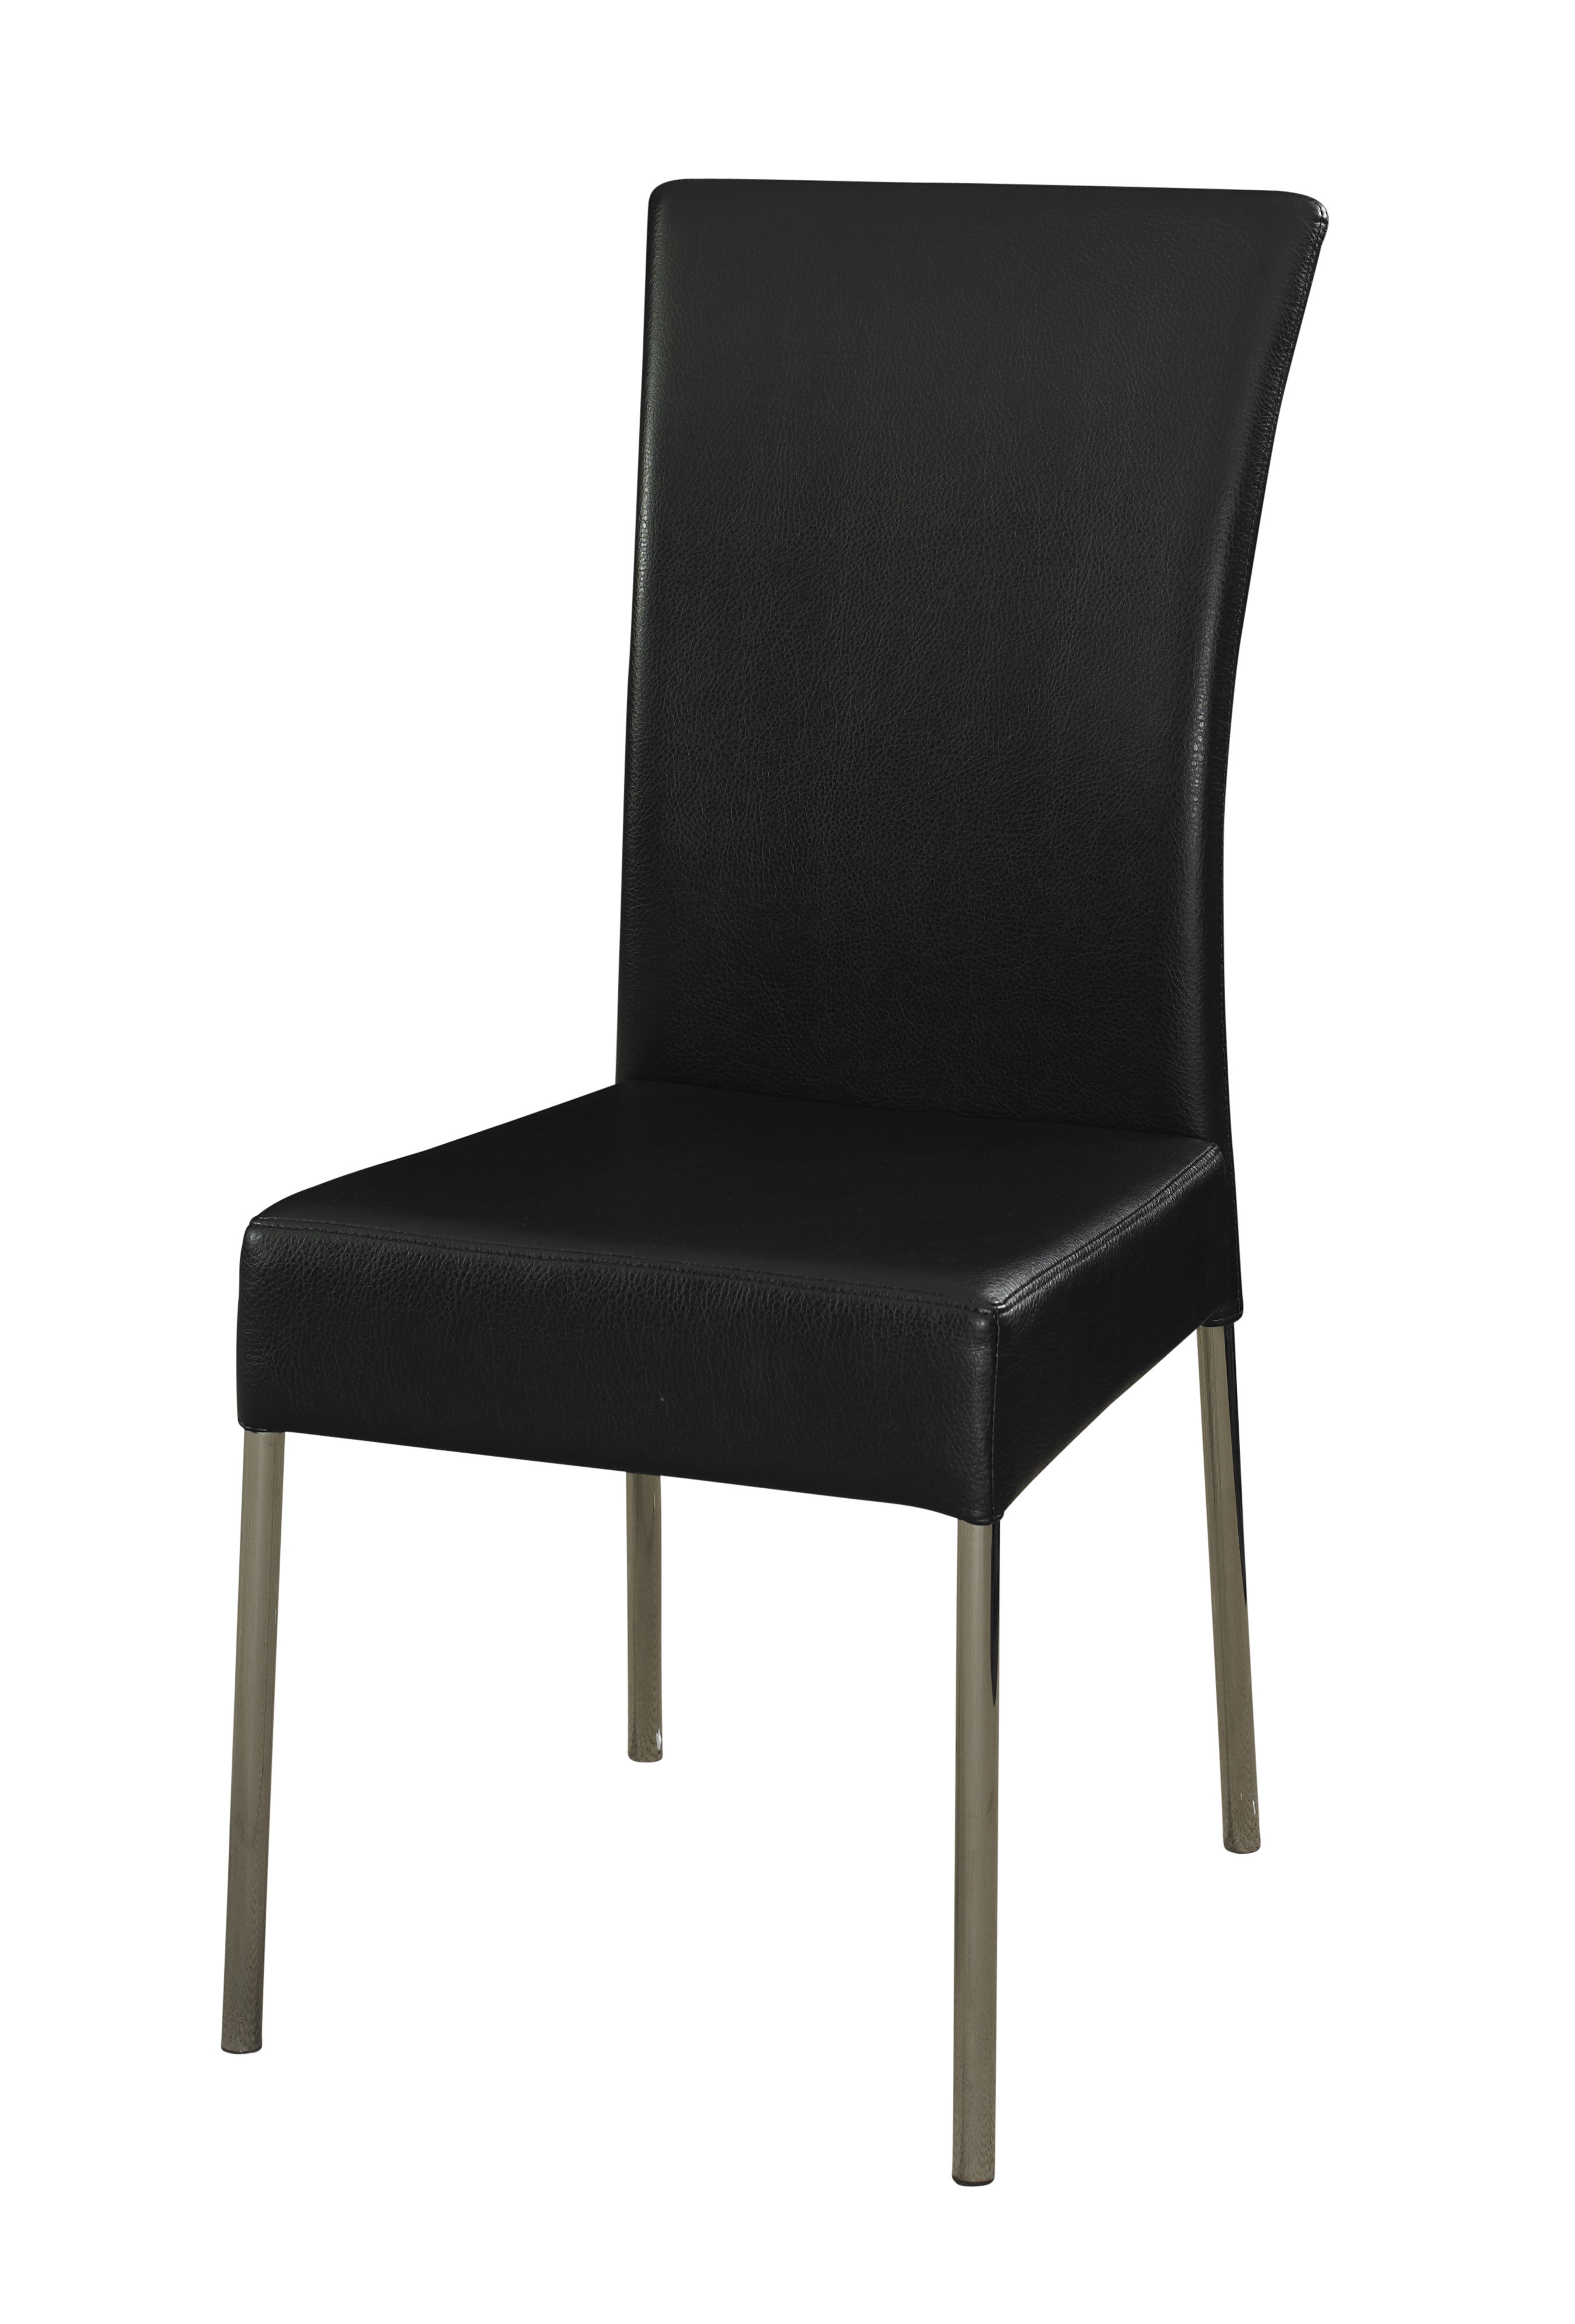 Kmart Dining Chairs L Powell Cameo Black Dining Chair Home Furniture